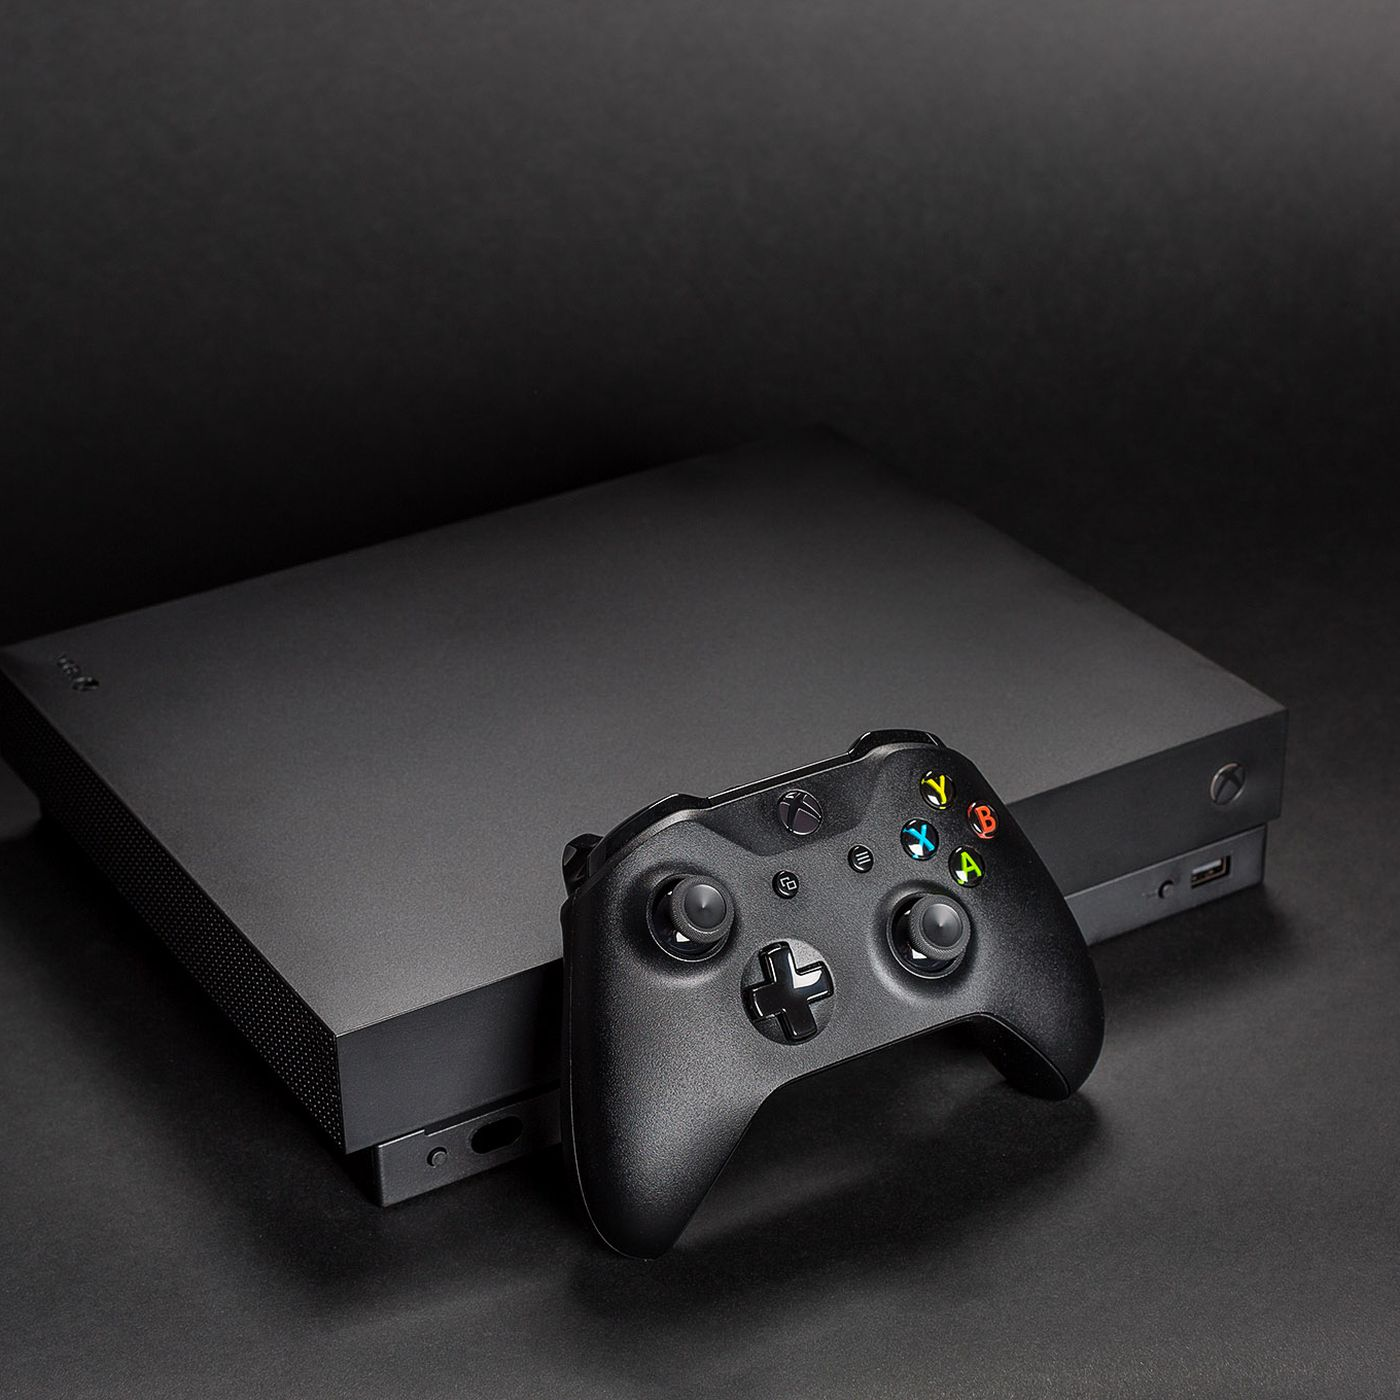 Xbox One X Review The Verge